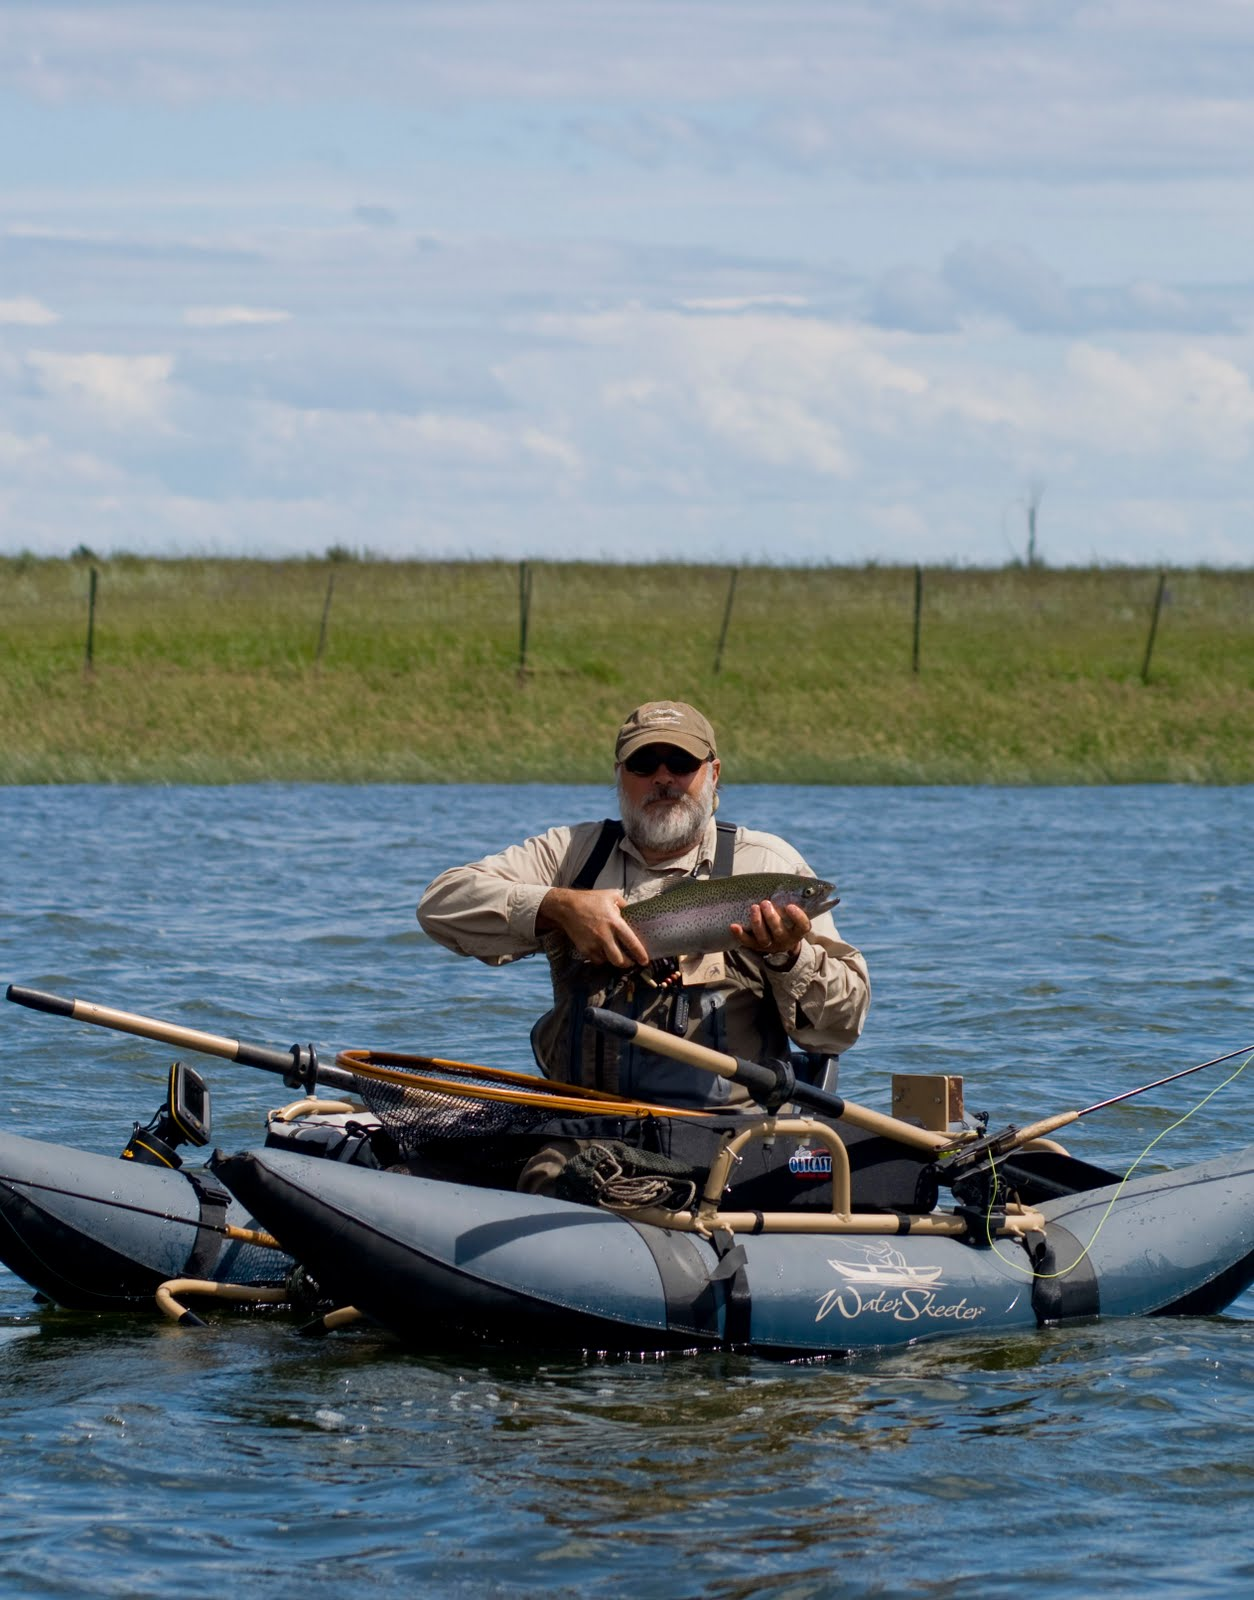 Fly fishing traditions double anchoring your pontoon boat for Fly fishing pontoon boats